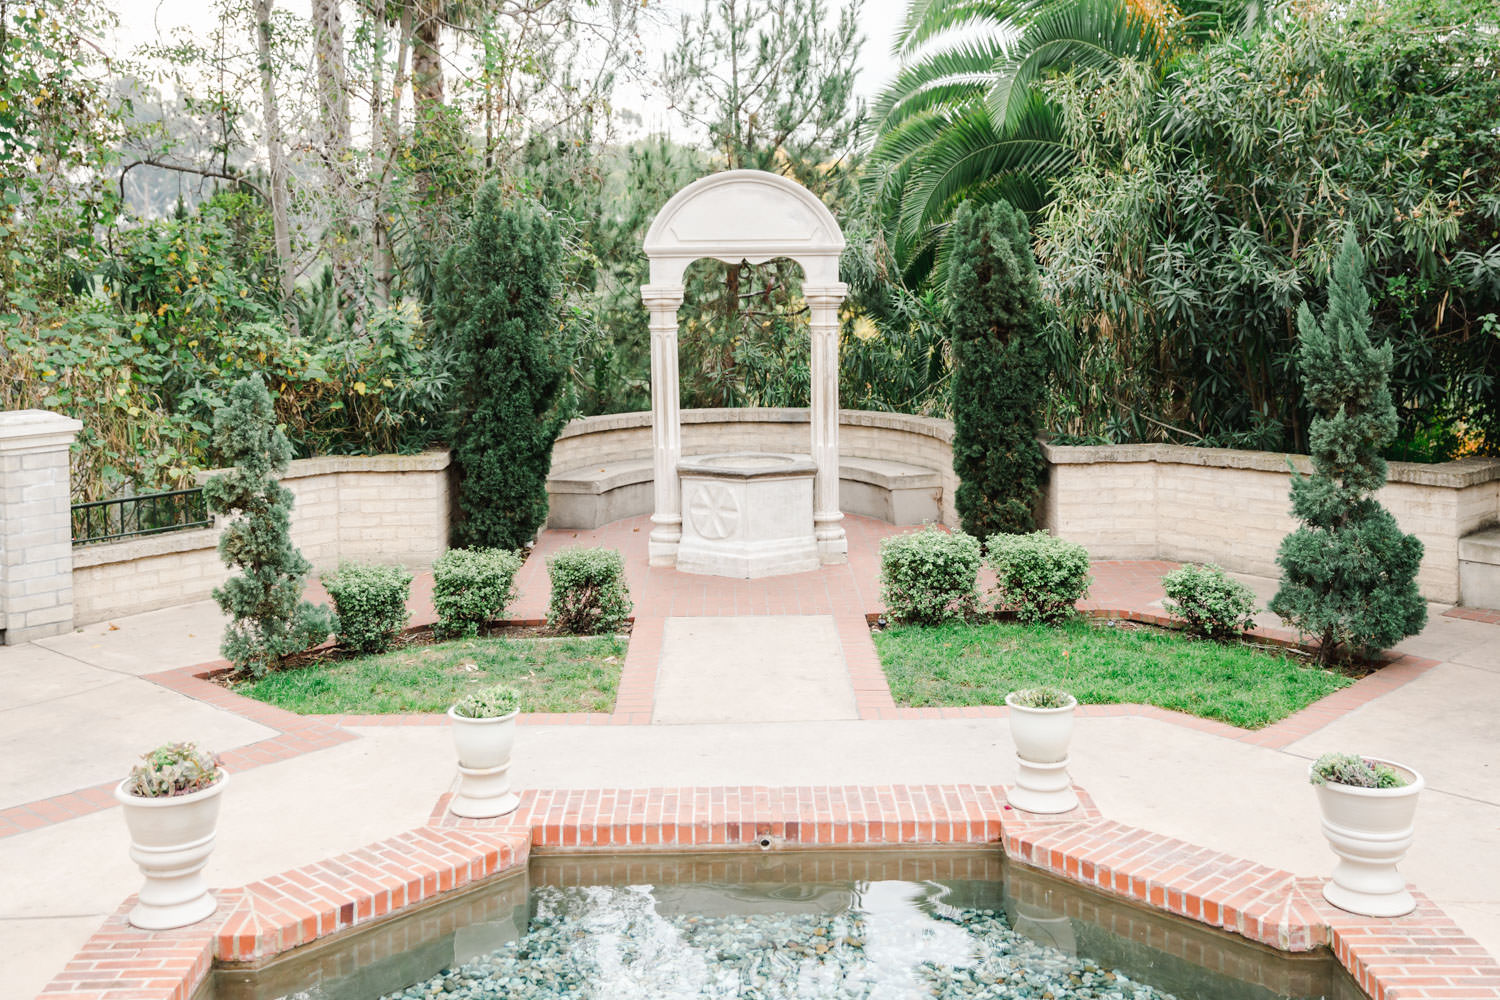 European Wedding Venues in San Diego: The Prado in Balboa Park